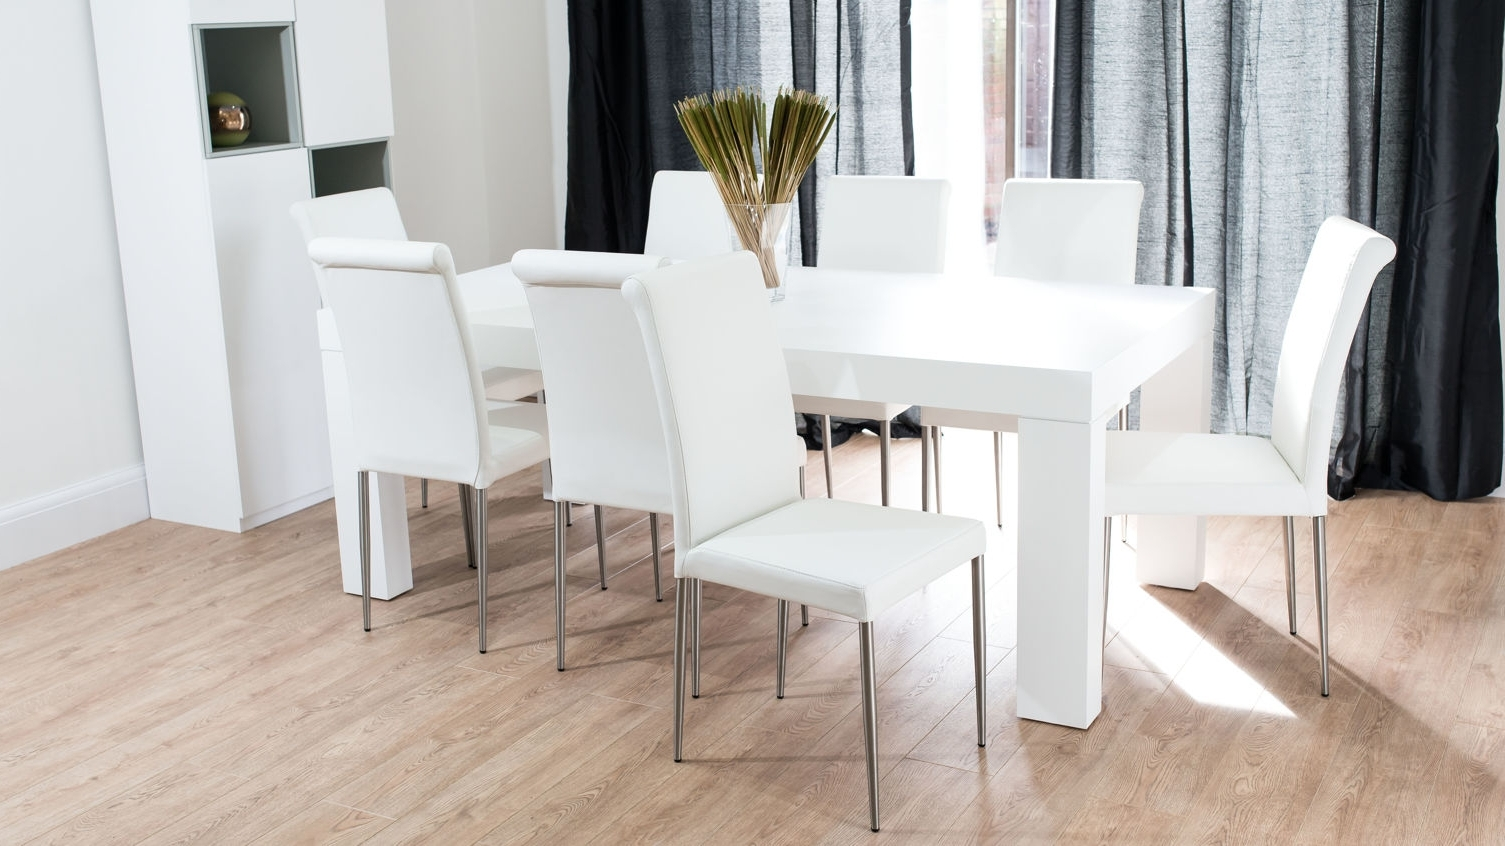 Well Known Dining Table Set White – Castrophotos Regarding Smartie Dining Tables And Chairs (View 25 of 25)